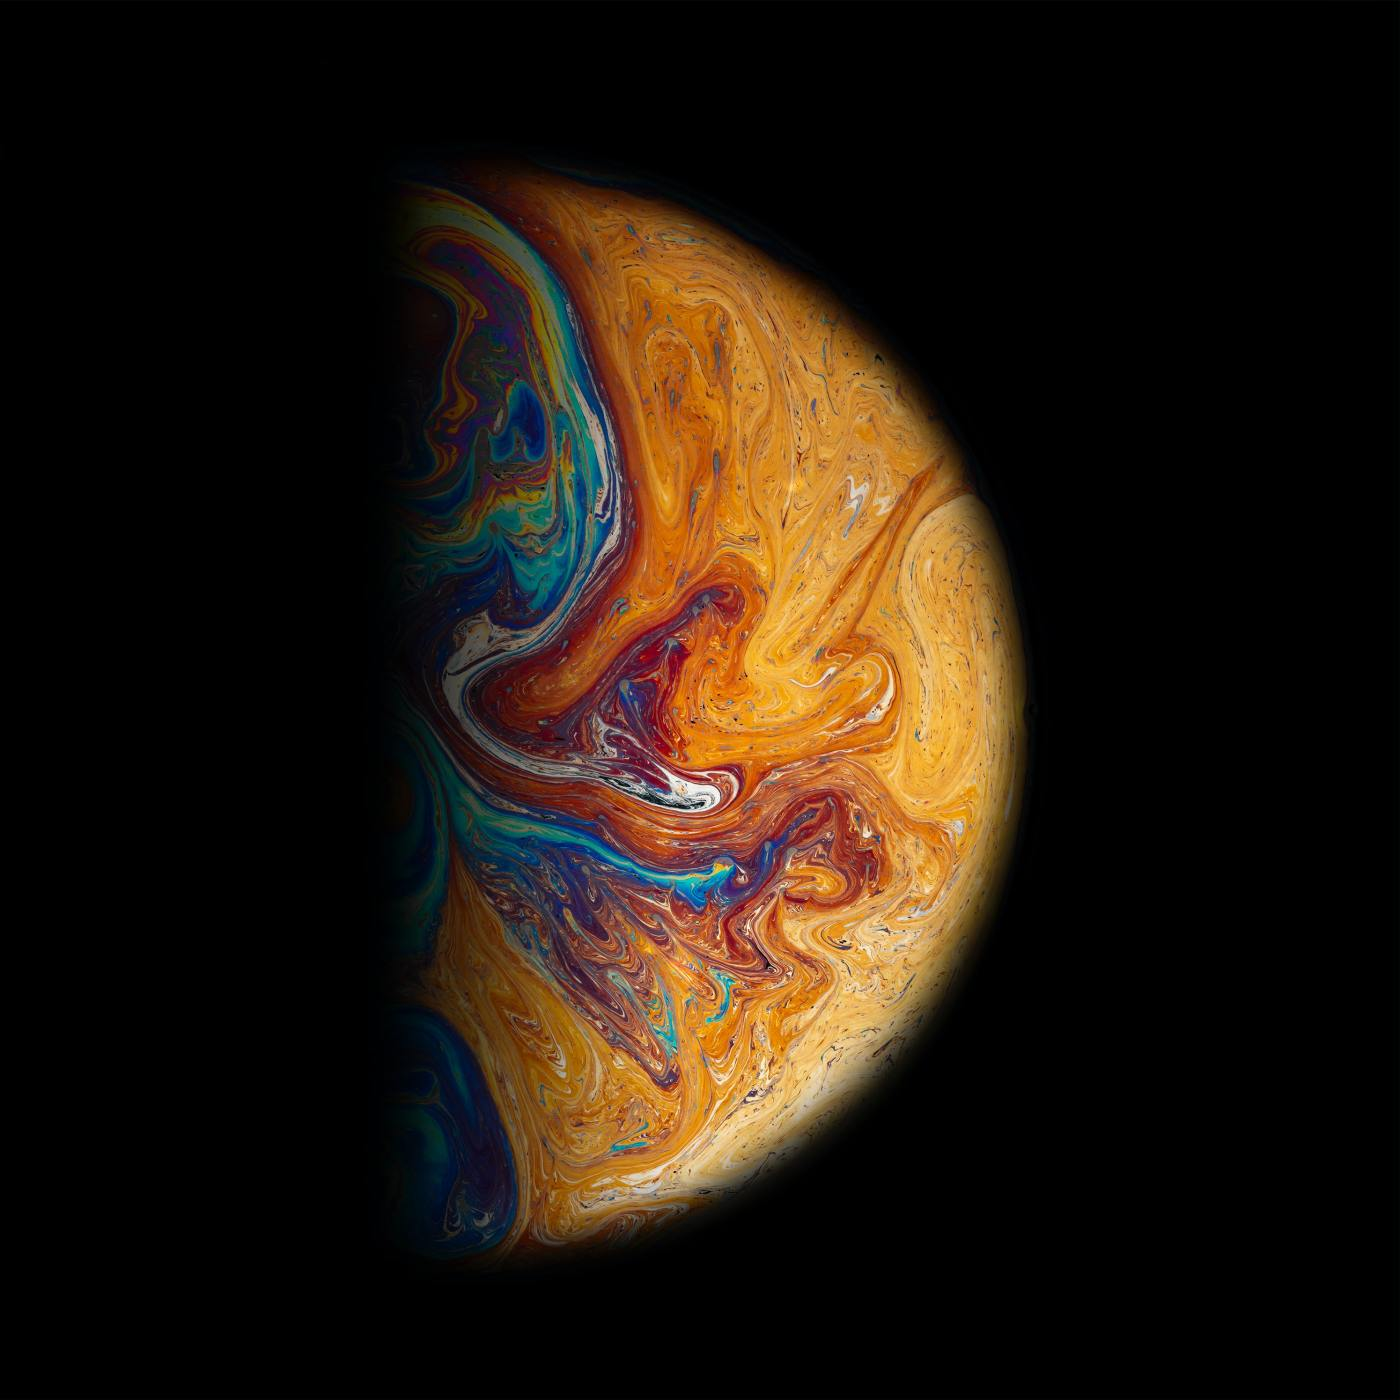 Painting of the planet